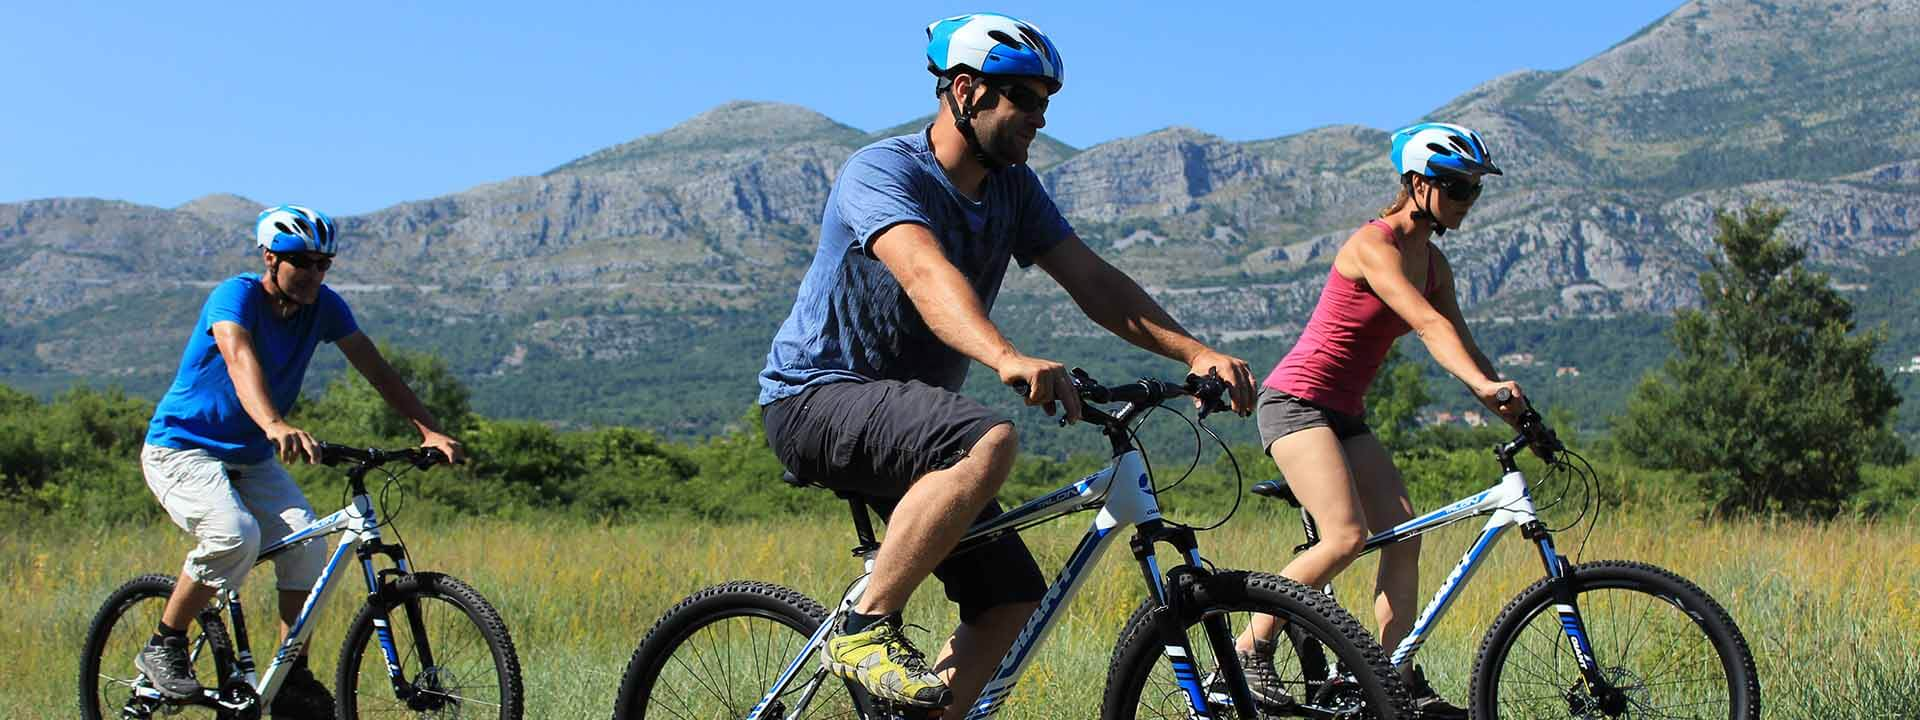 Konavle Biking Daily TM Adventure Slide 9